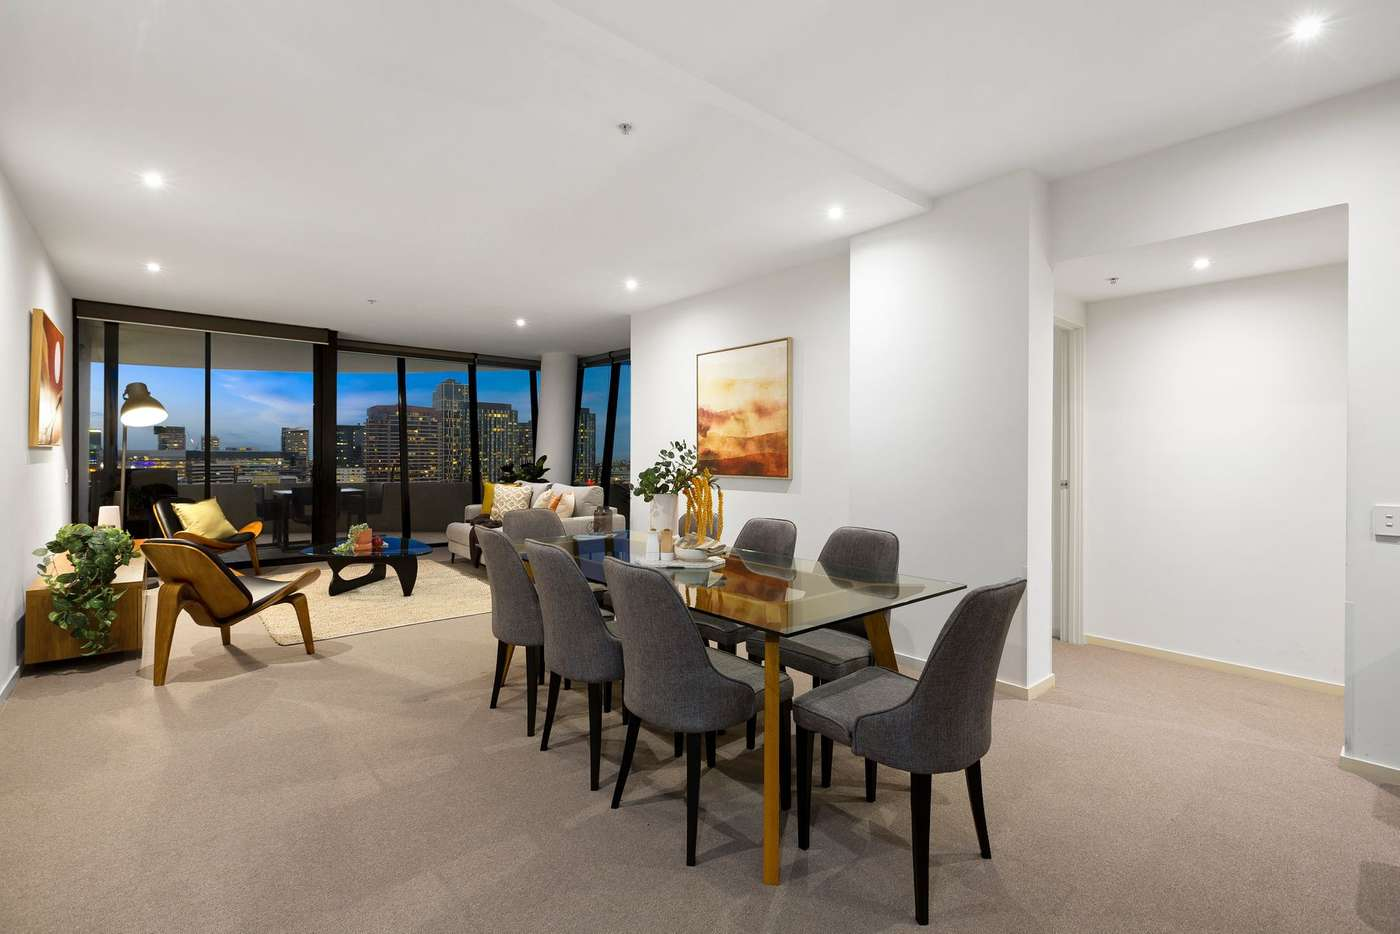 Main view of Homely apartment listing, 1902/15 Caravel Lane, Docklands VIC 3008